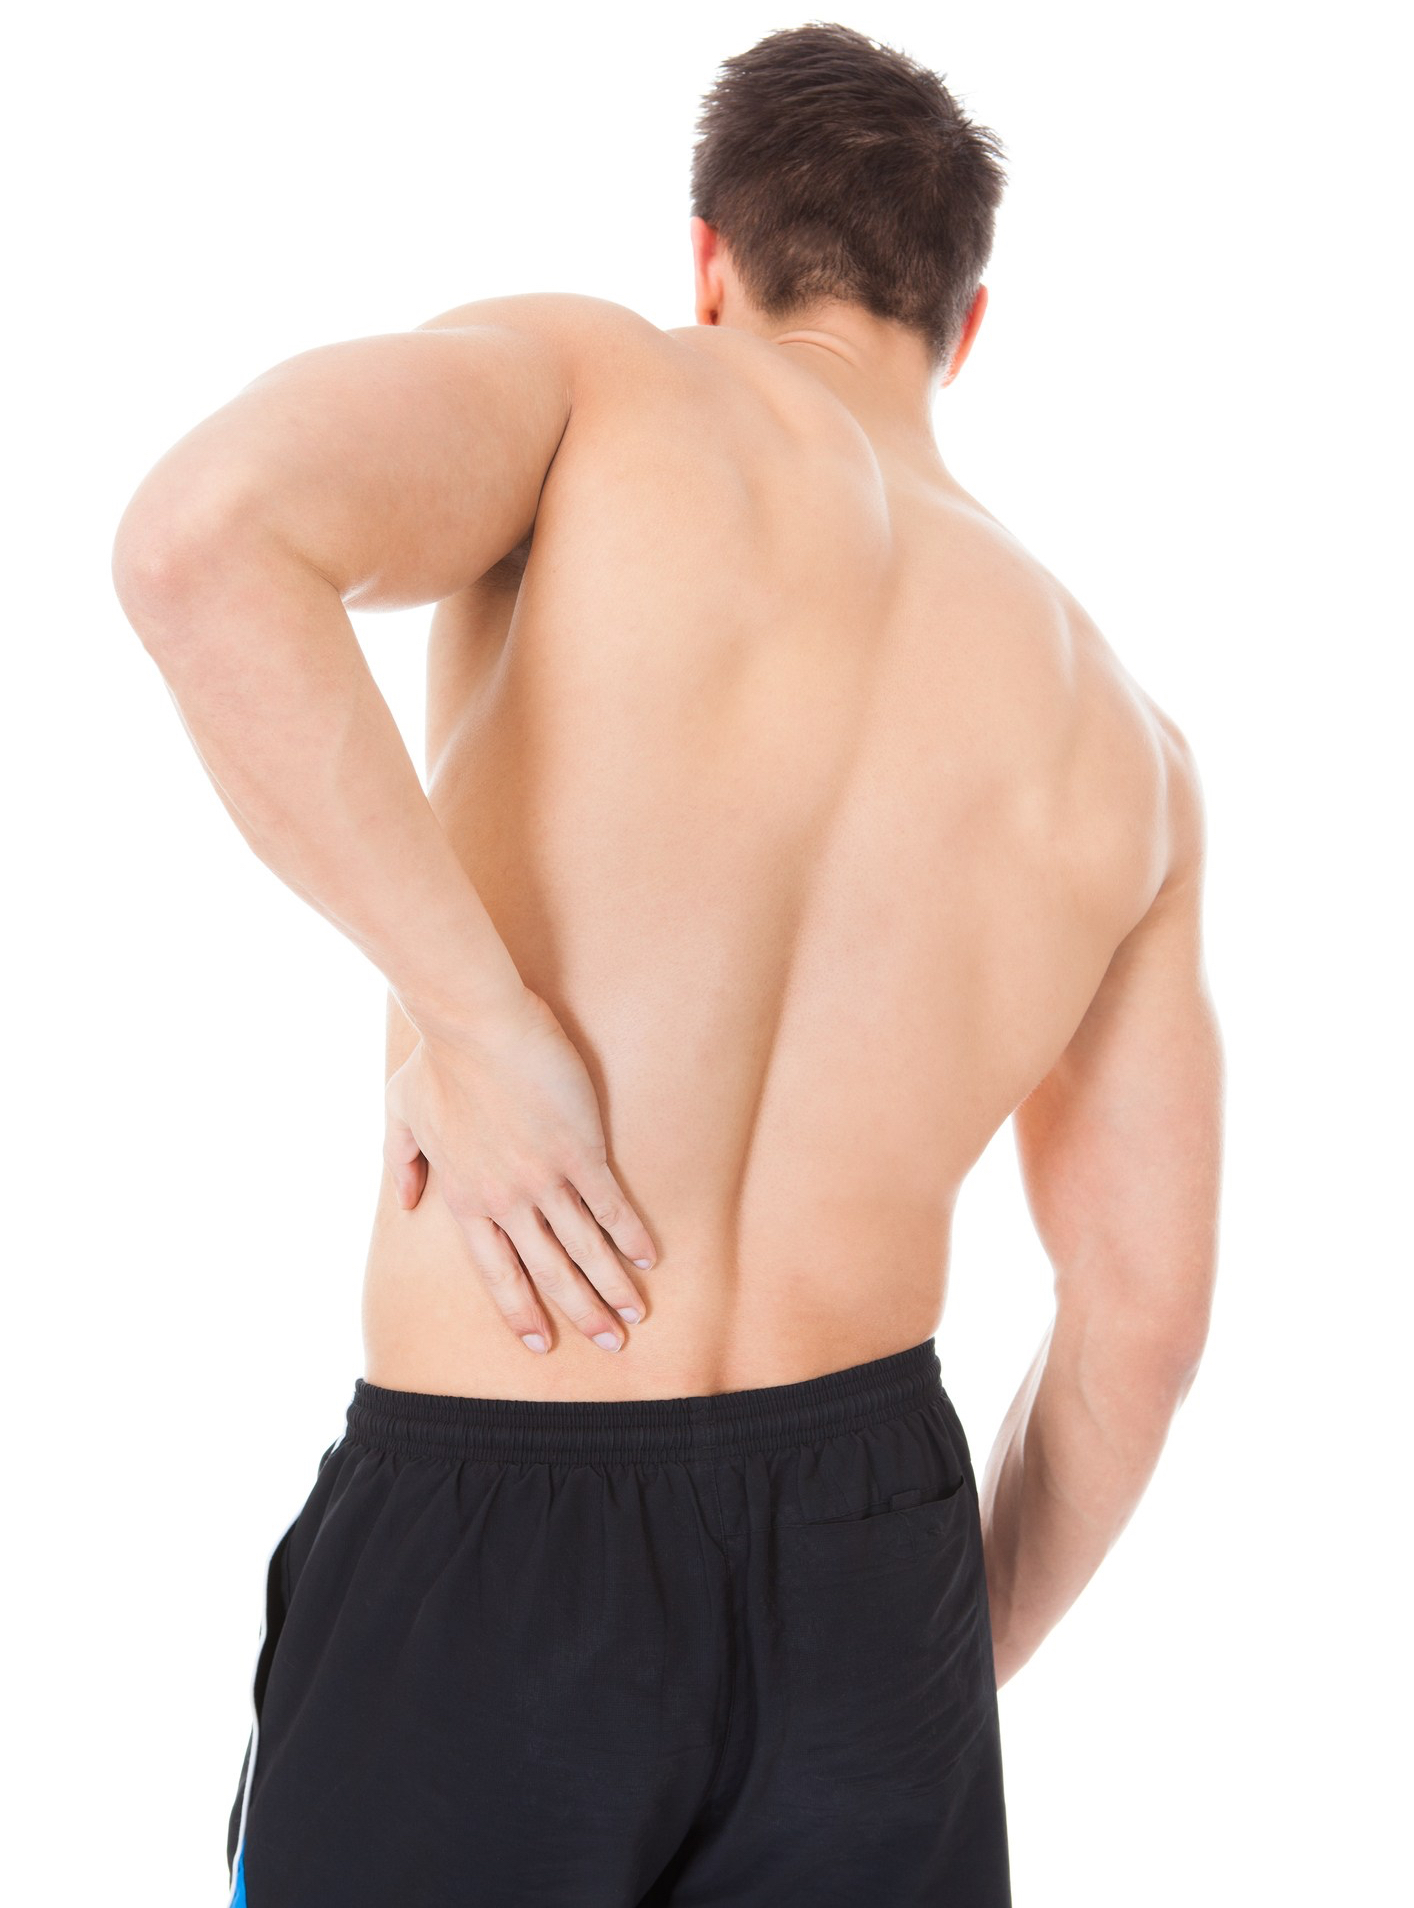 Man in black shorts holding his back Suffering From Back Pain Acupuncture therapy in Edmonton for musculoskeletal injuries.